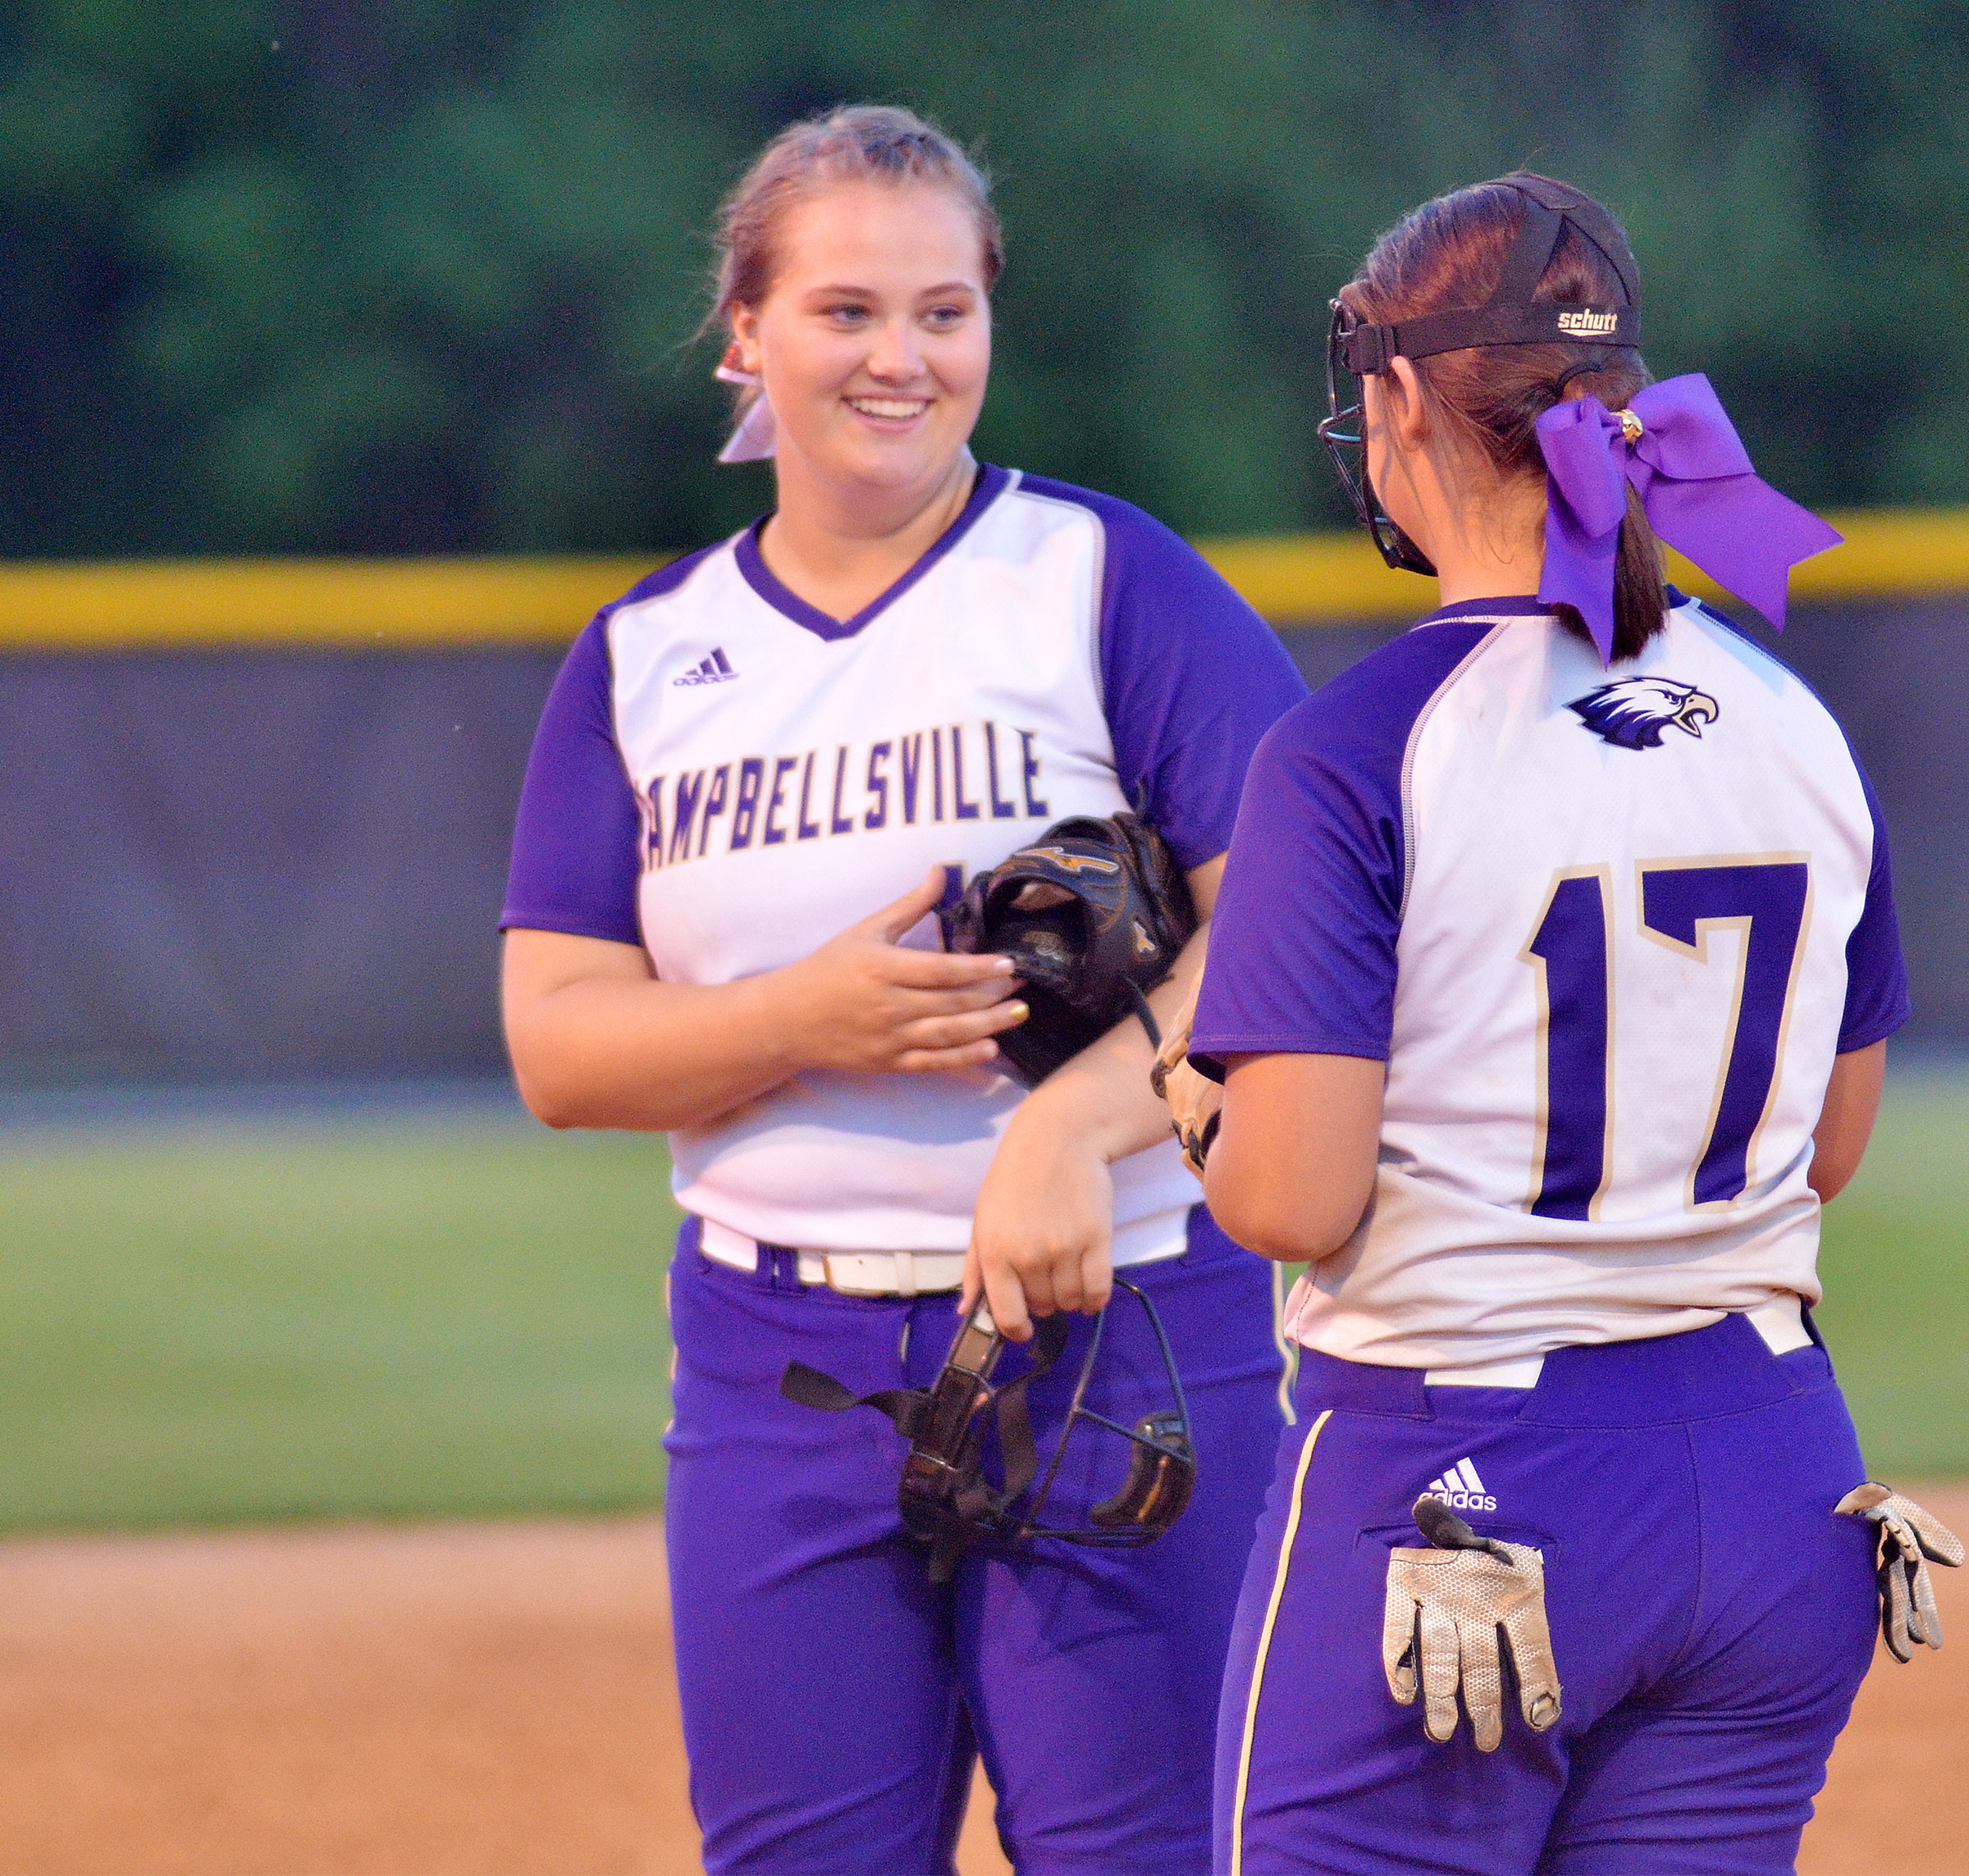 CHS seniors Brenna Wethington, at left, and Kailey Morris talk during an inning.